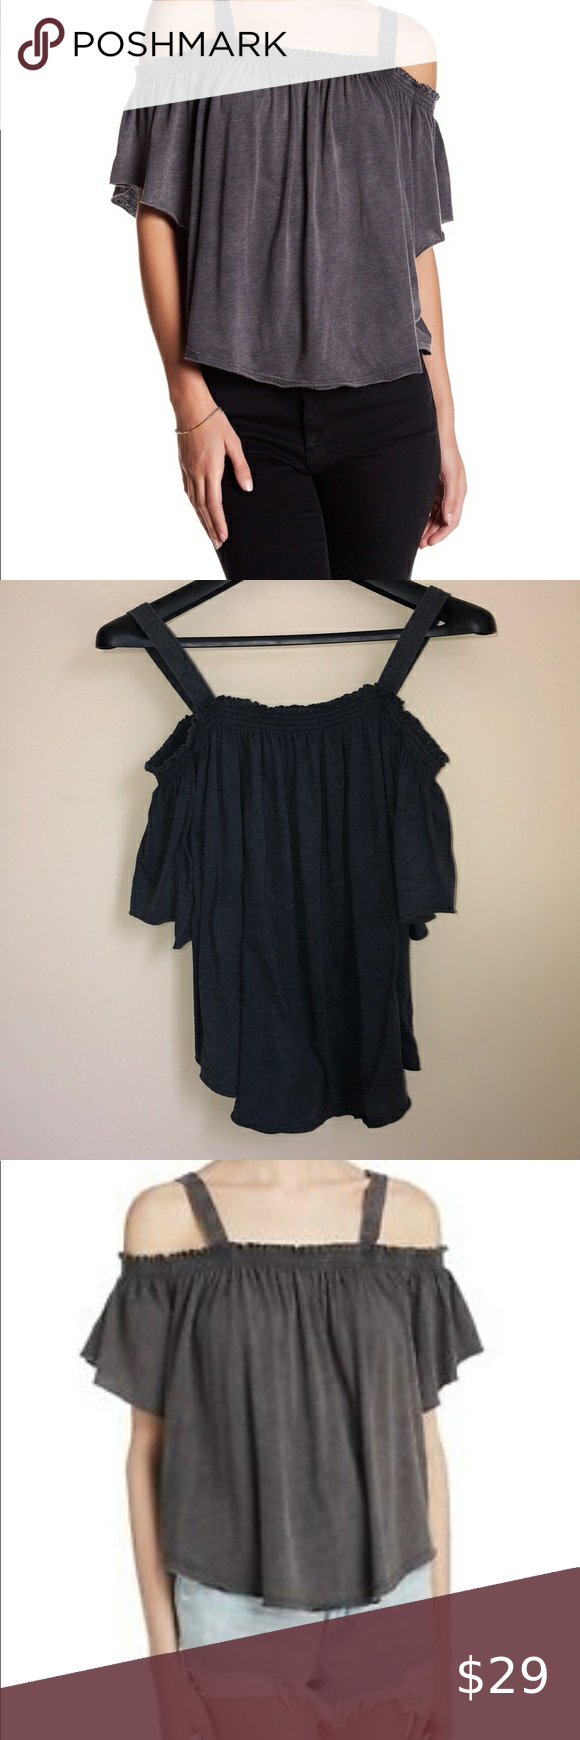 We The Free, off the shoulder gray top, size L